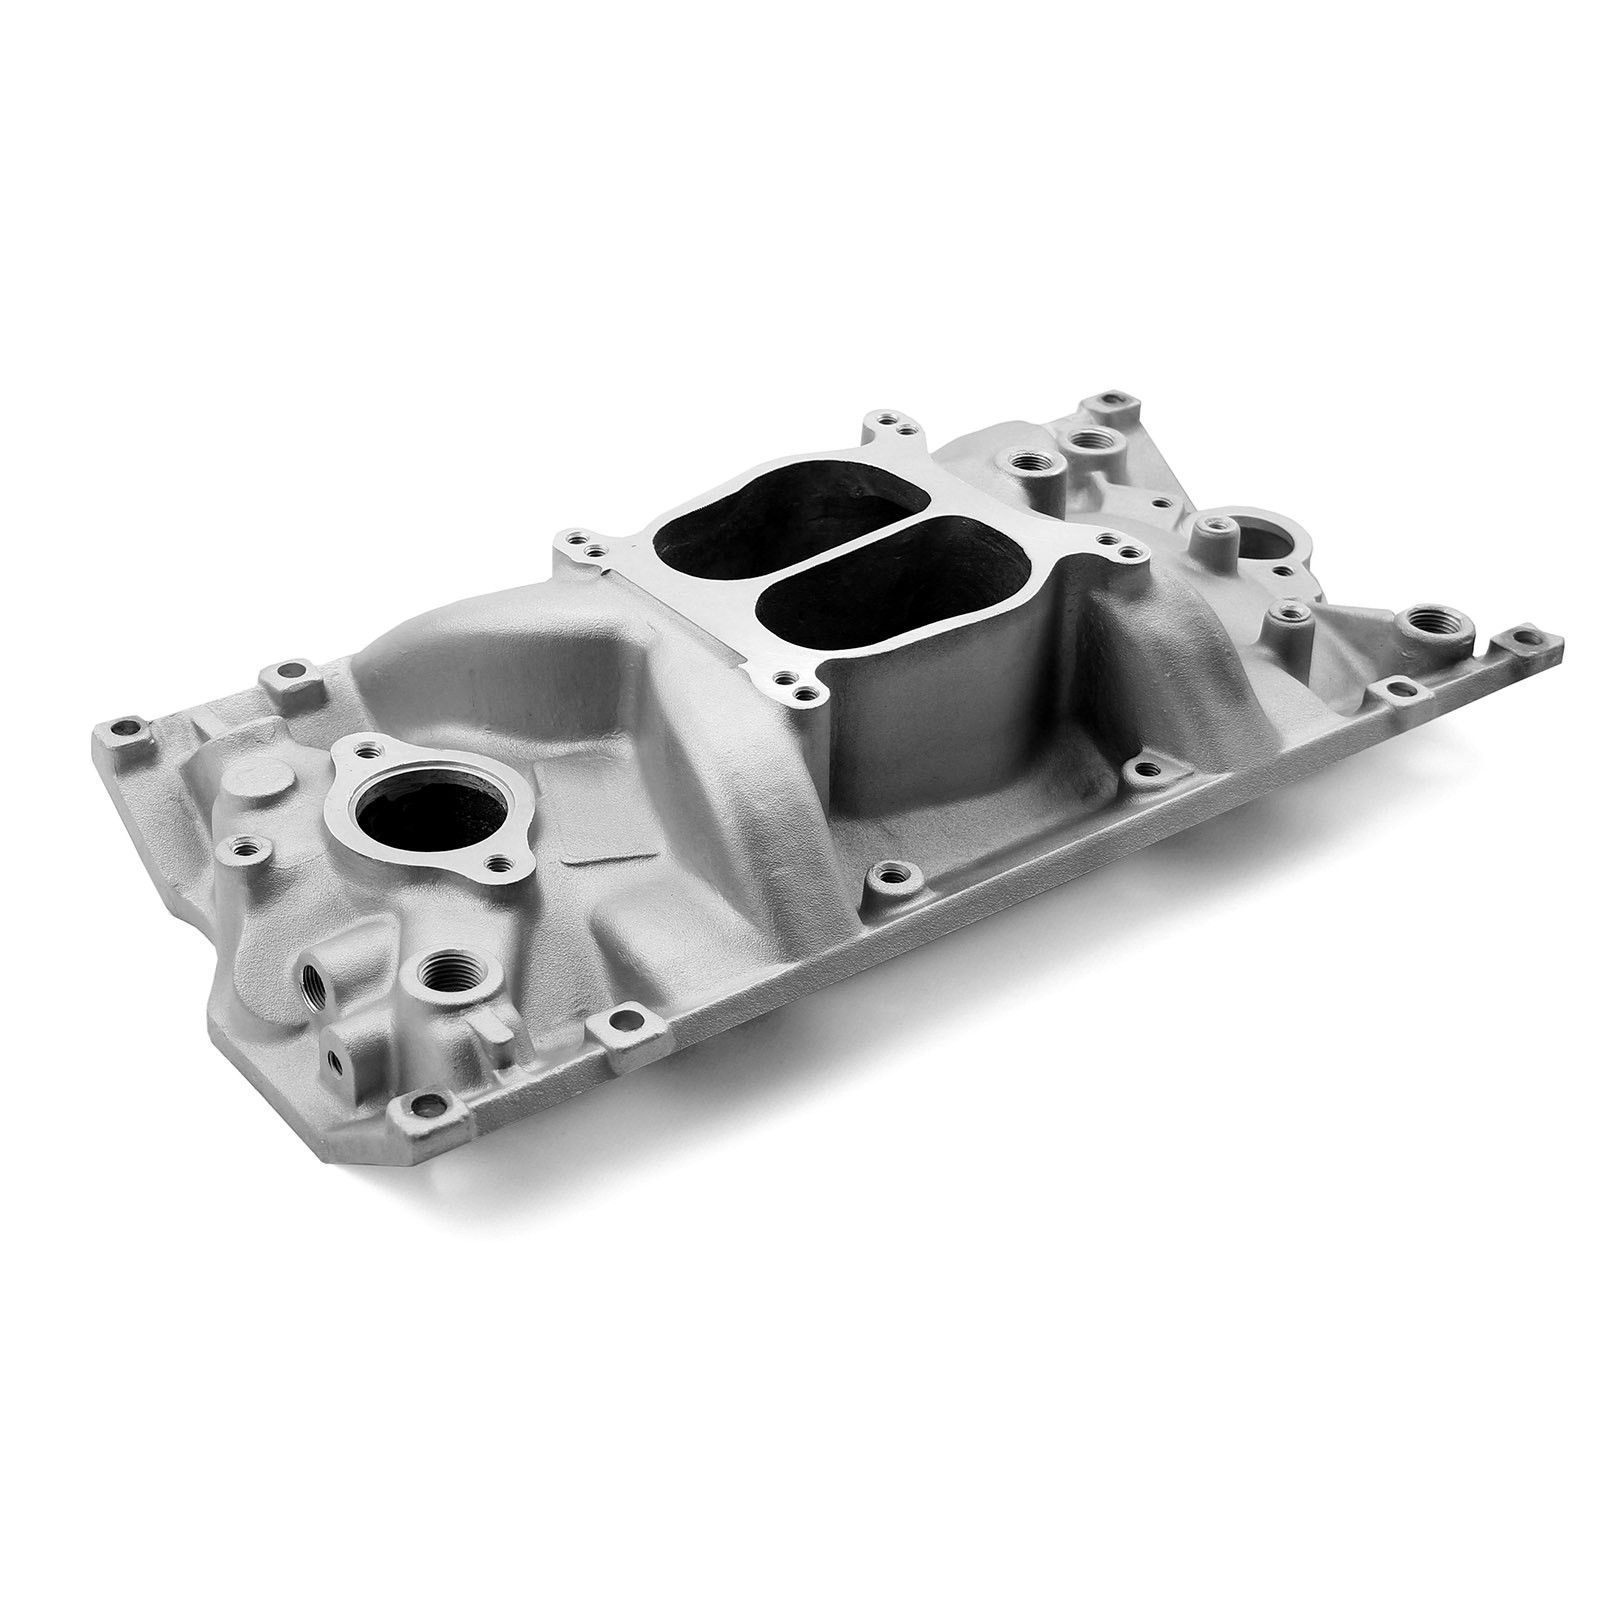 Chevy Sbc 350 Holeshot Vortec Intake Manifold Ceramic Coated Chevy Performance Racing Electronic Products